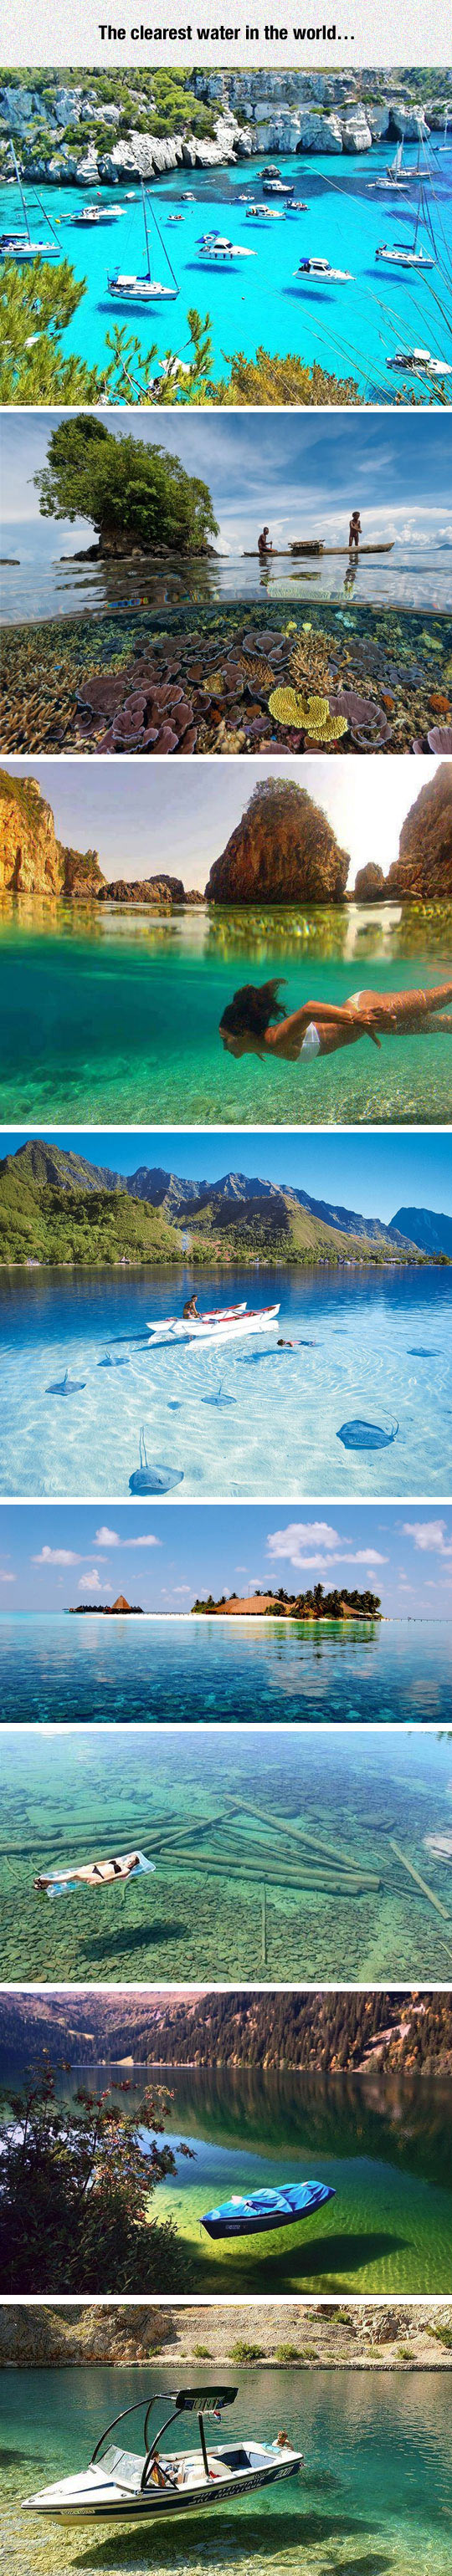 cool-crystal-clear-water-beach-paradise